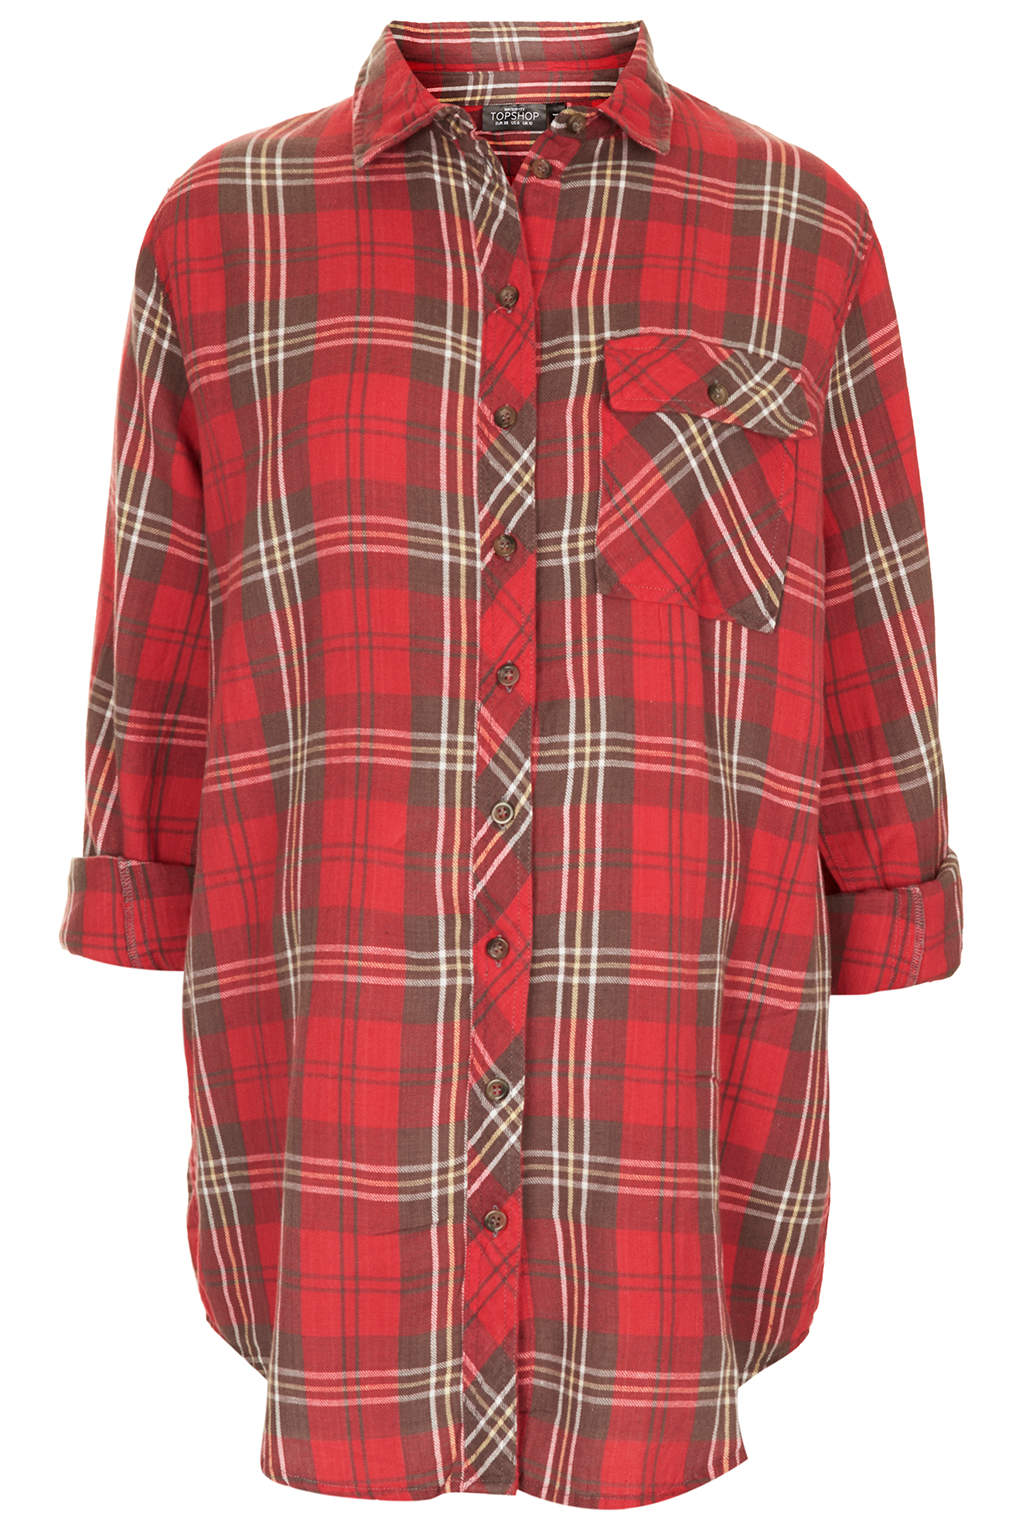 Topshop check shirt